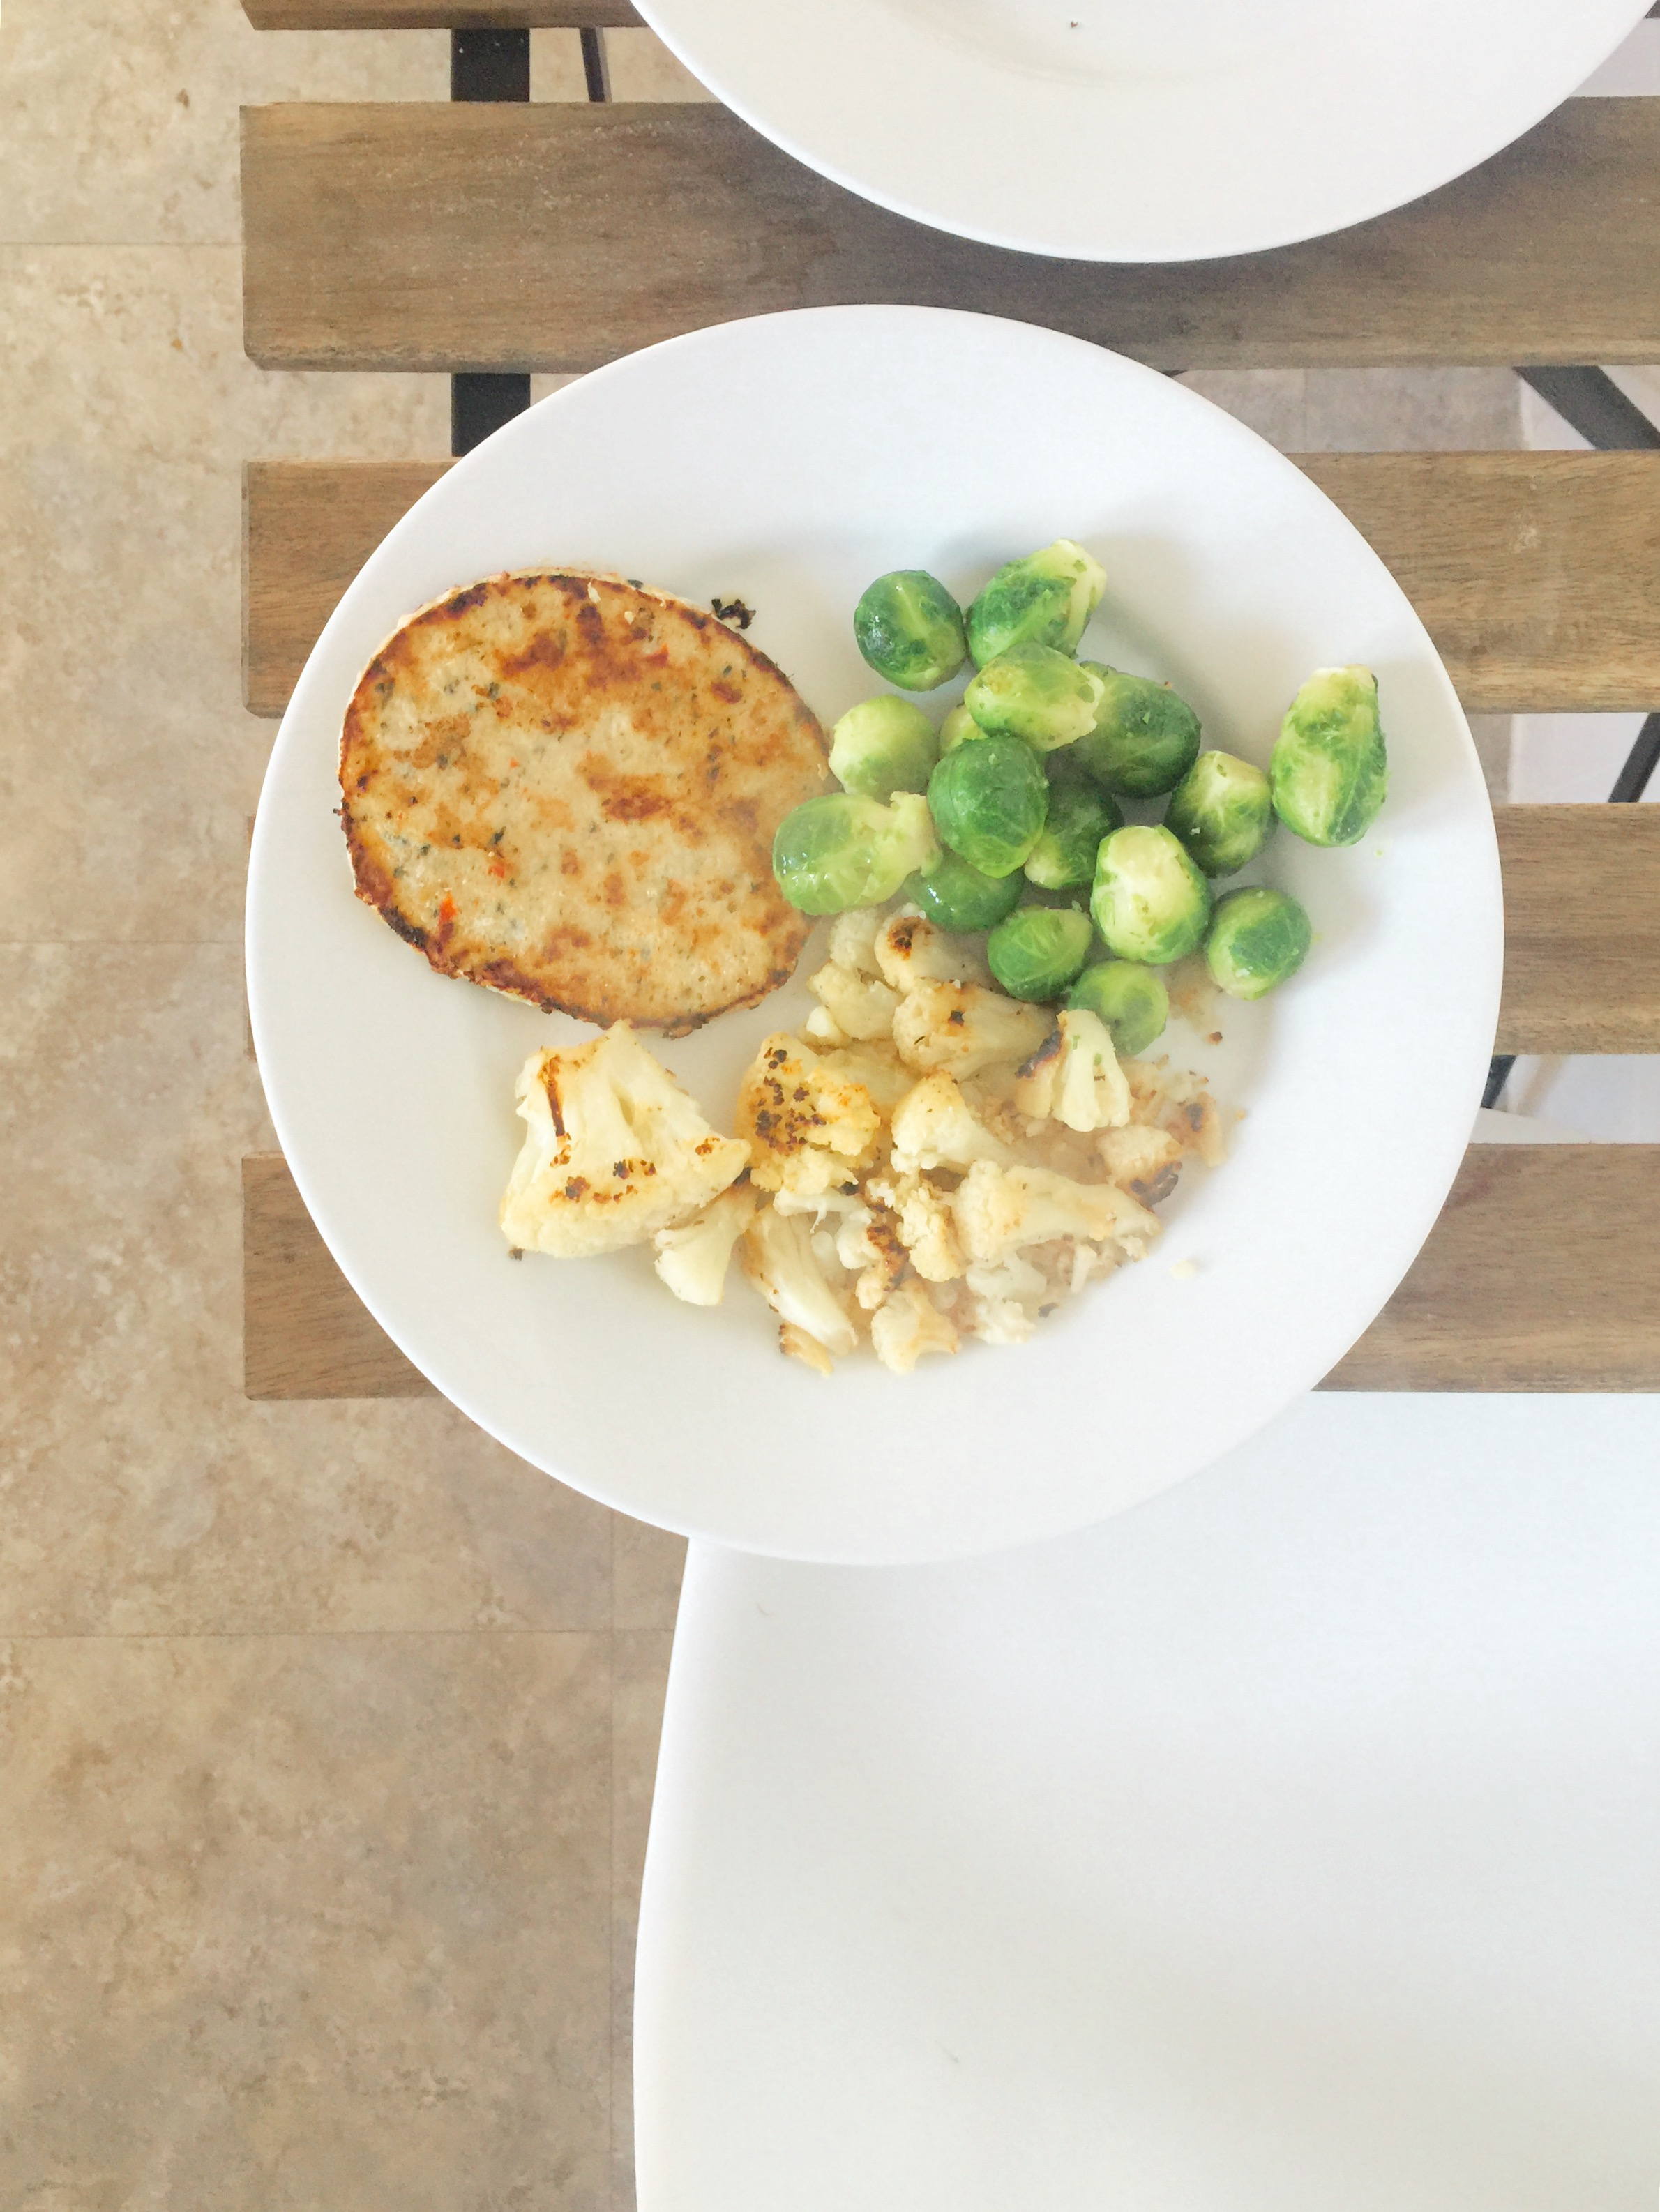 Trader Joe's Chili Lime Chicken Burger, Trader Joe's Grilled Cauliflower, and Brussels Sprouts. I used spicy mustard for dipping.